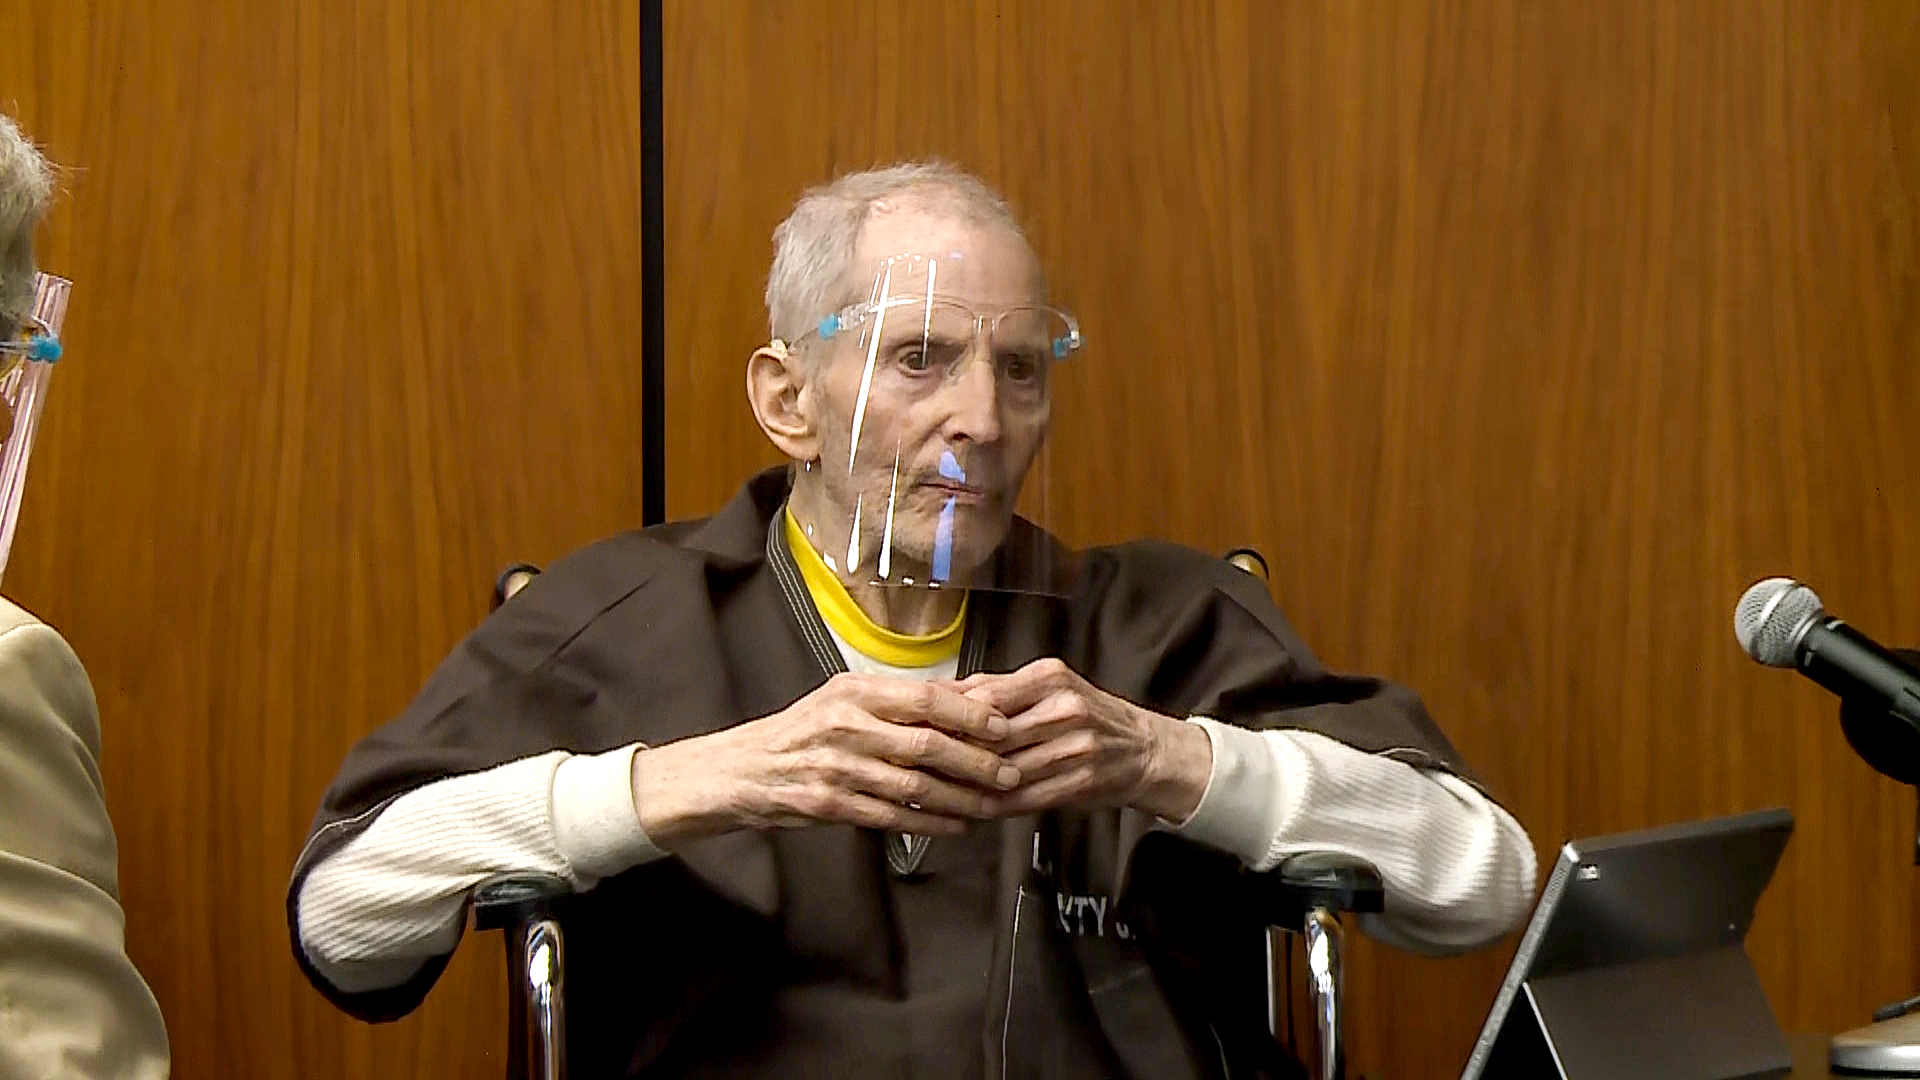 Fate of Robert Durst in jury's hands after long murder trial